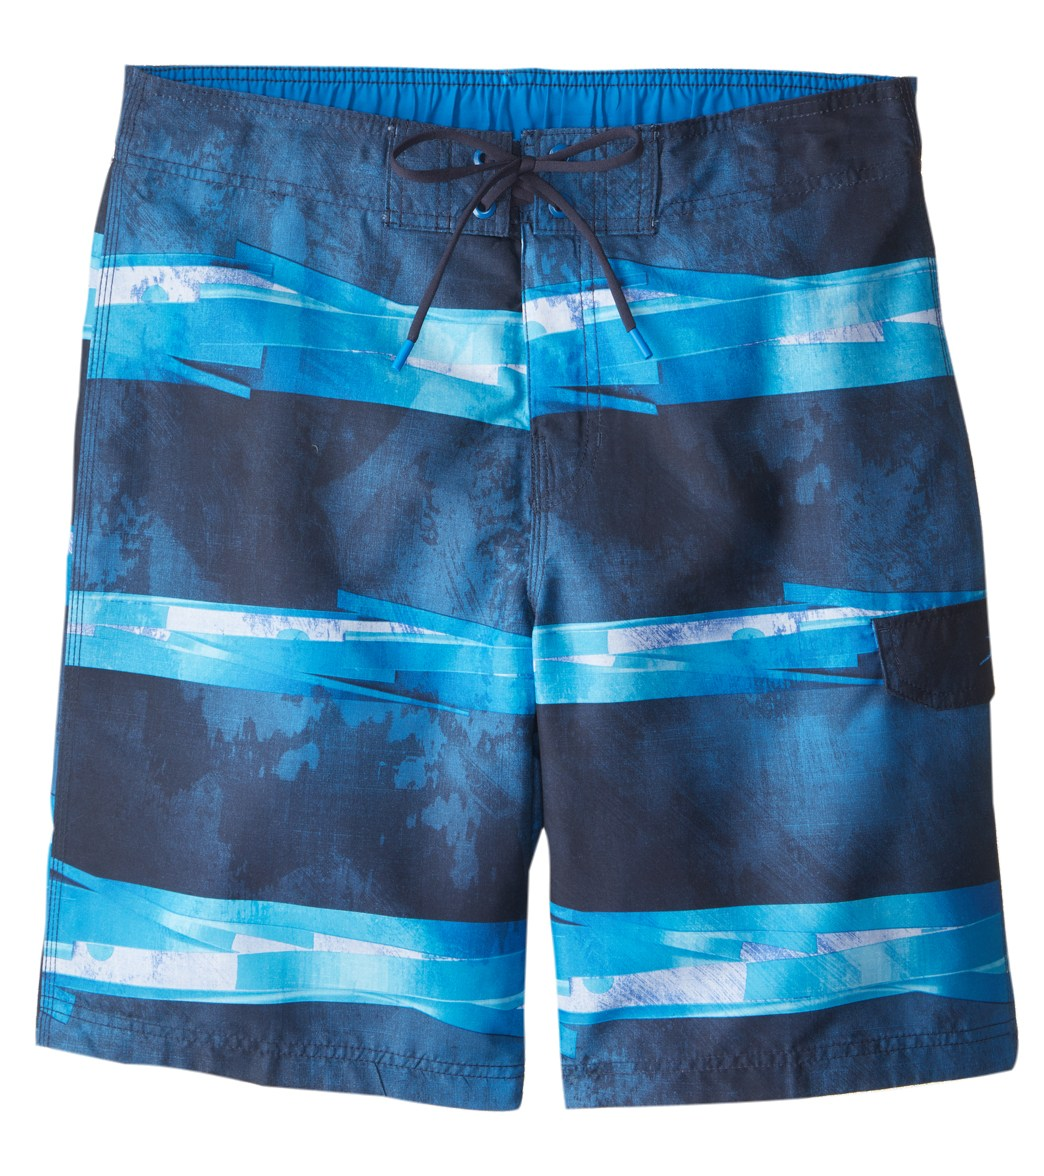 83eb99d208 Speedo Men's Setting Sun Stripe E-Board Short at SwimOutlet.com ...